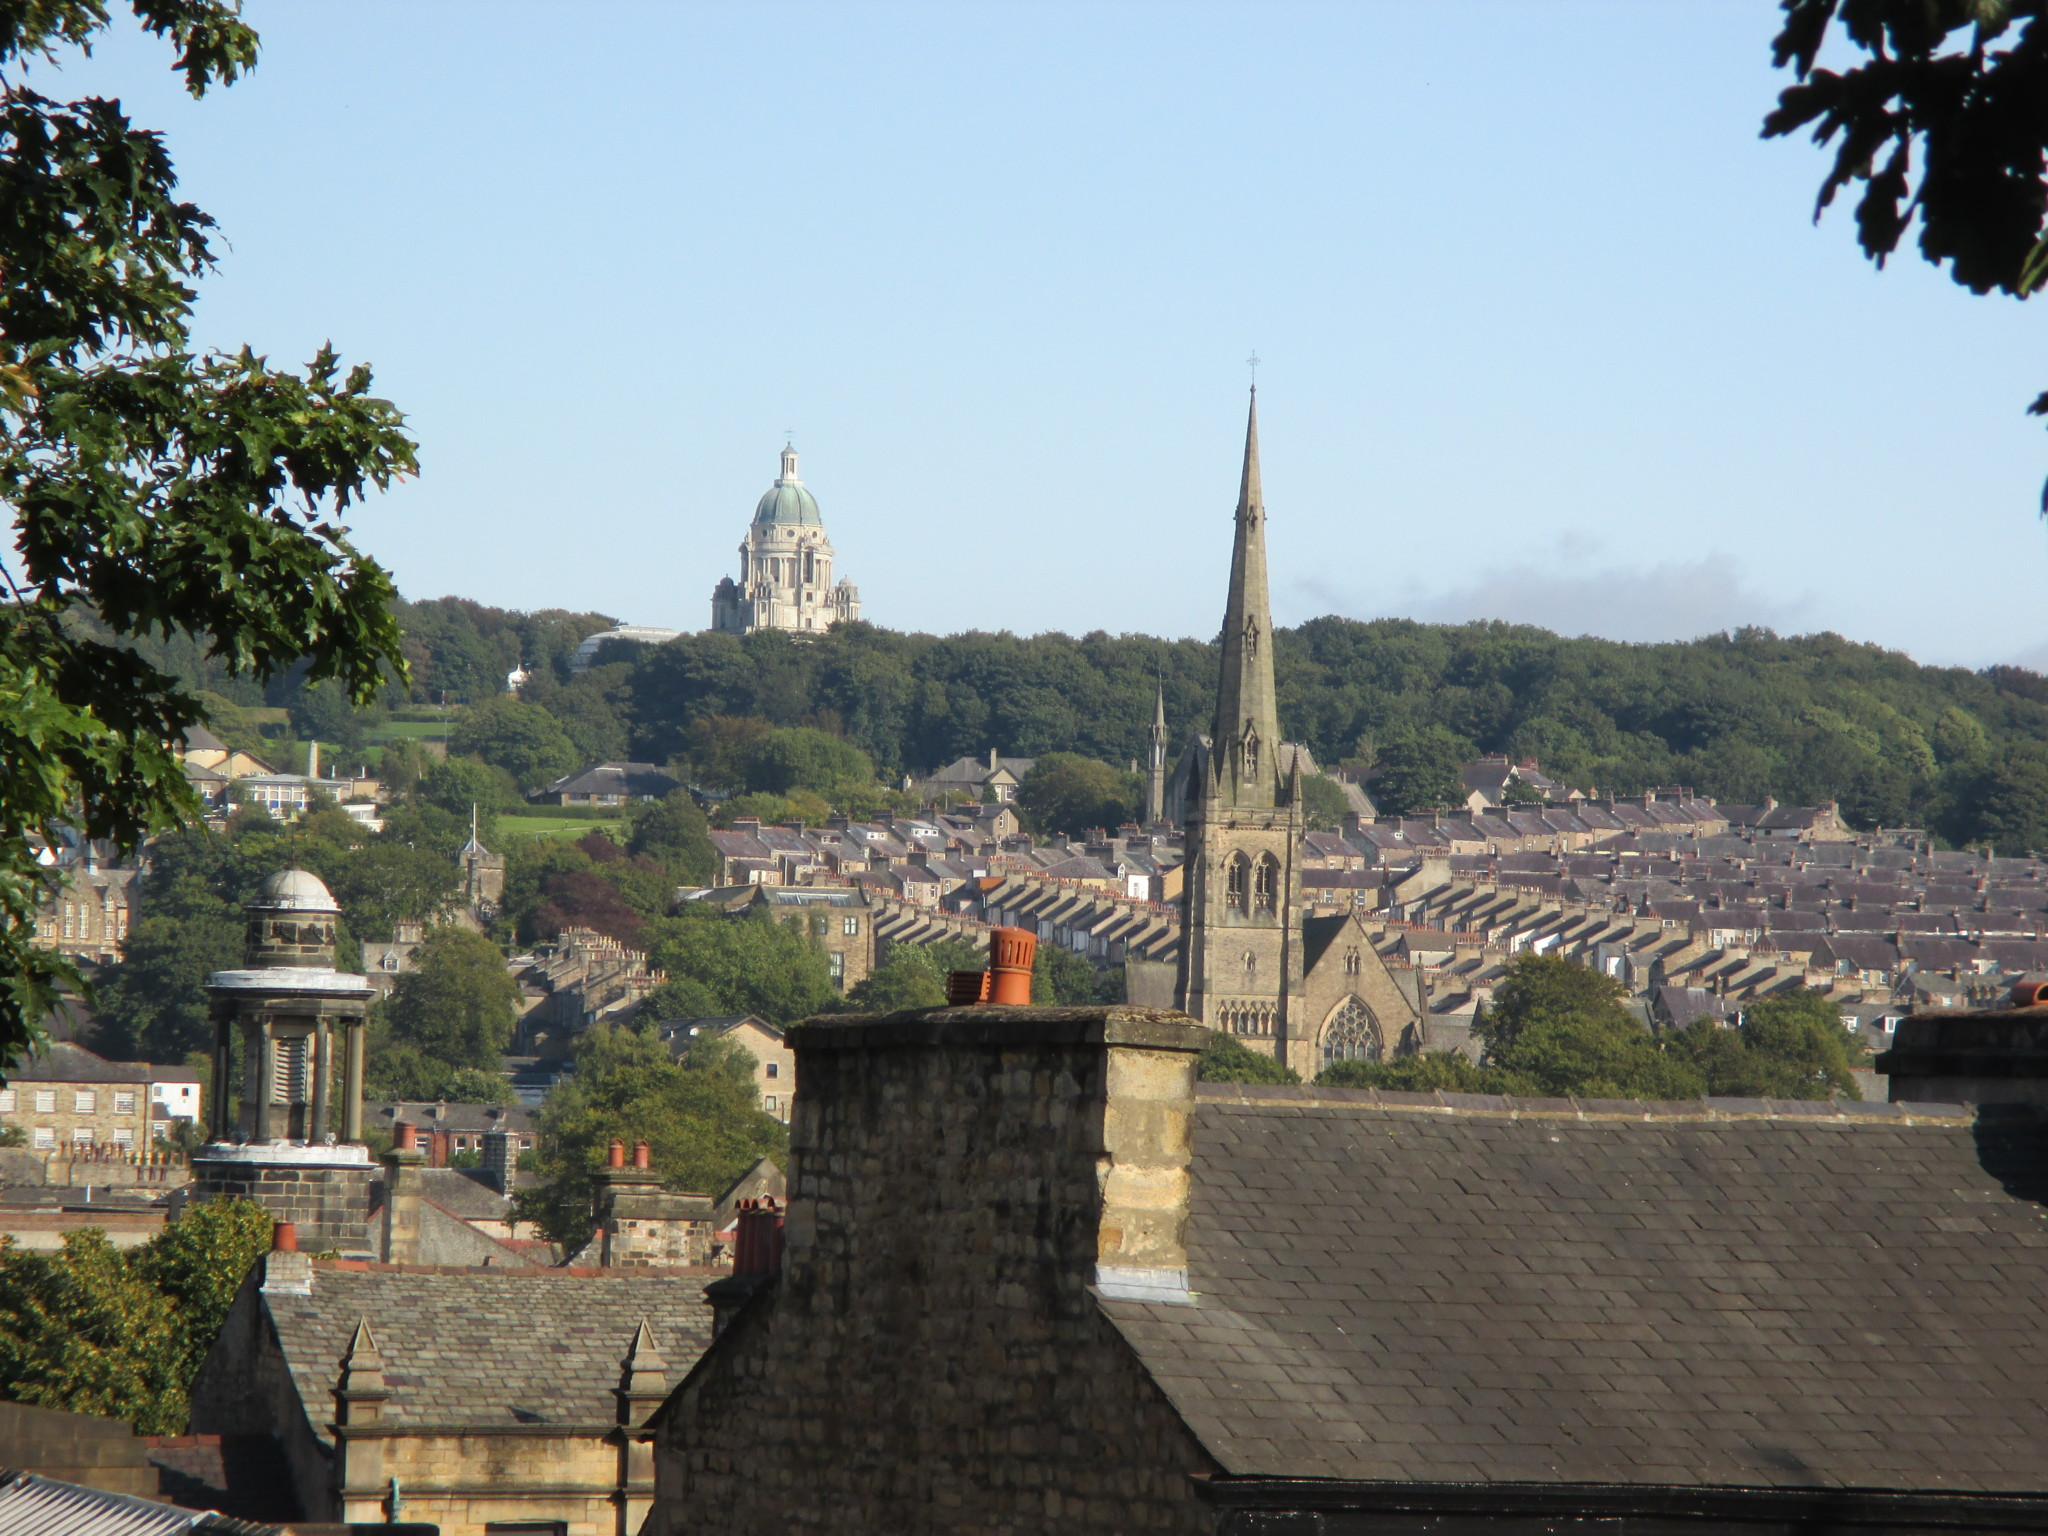 The picturesque town of Lancaster.